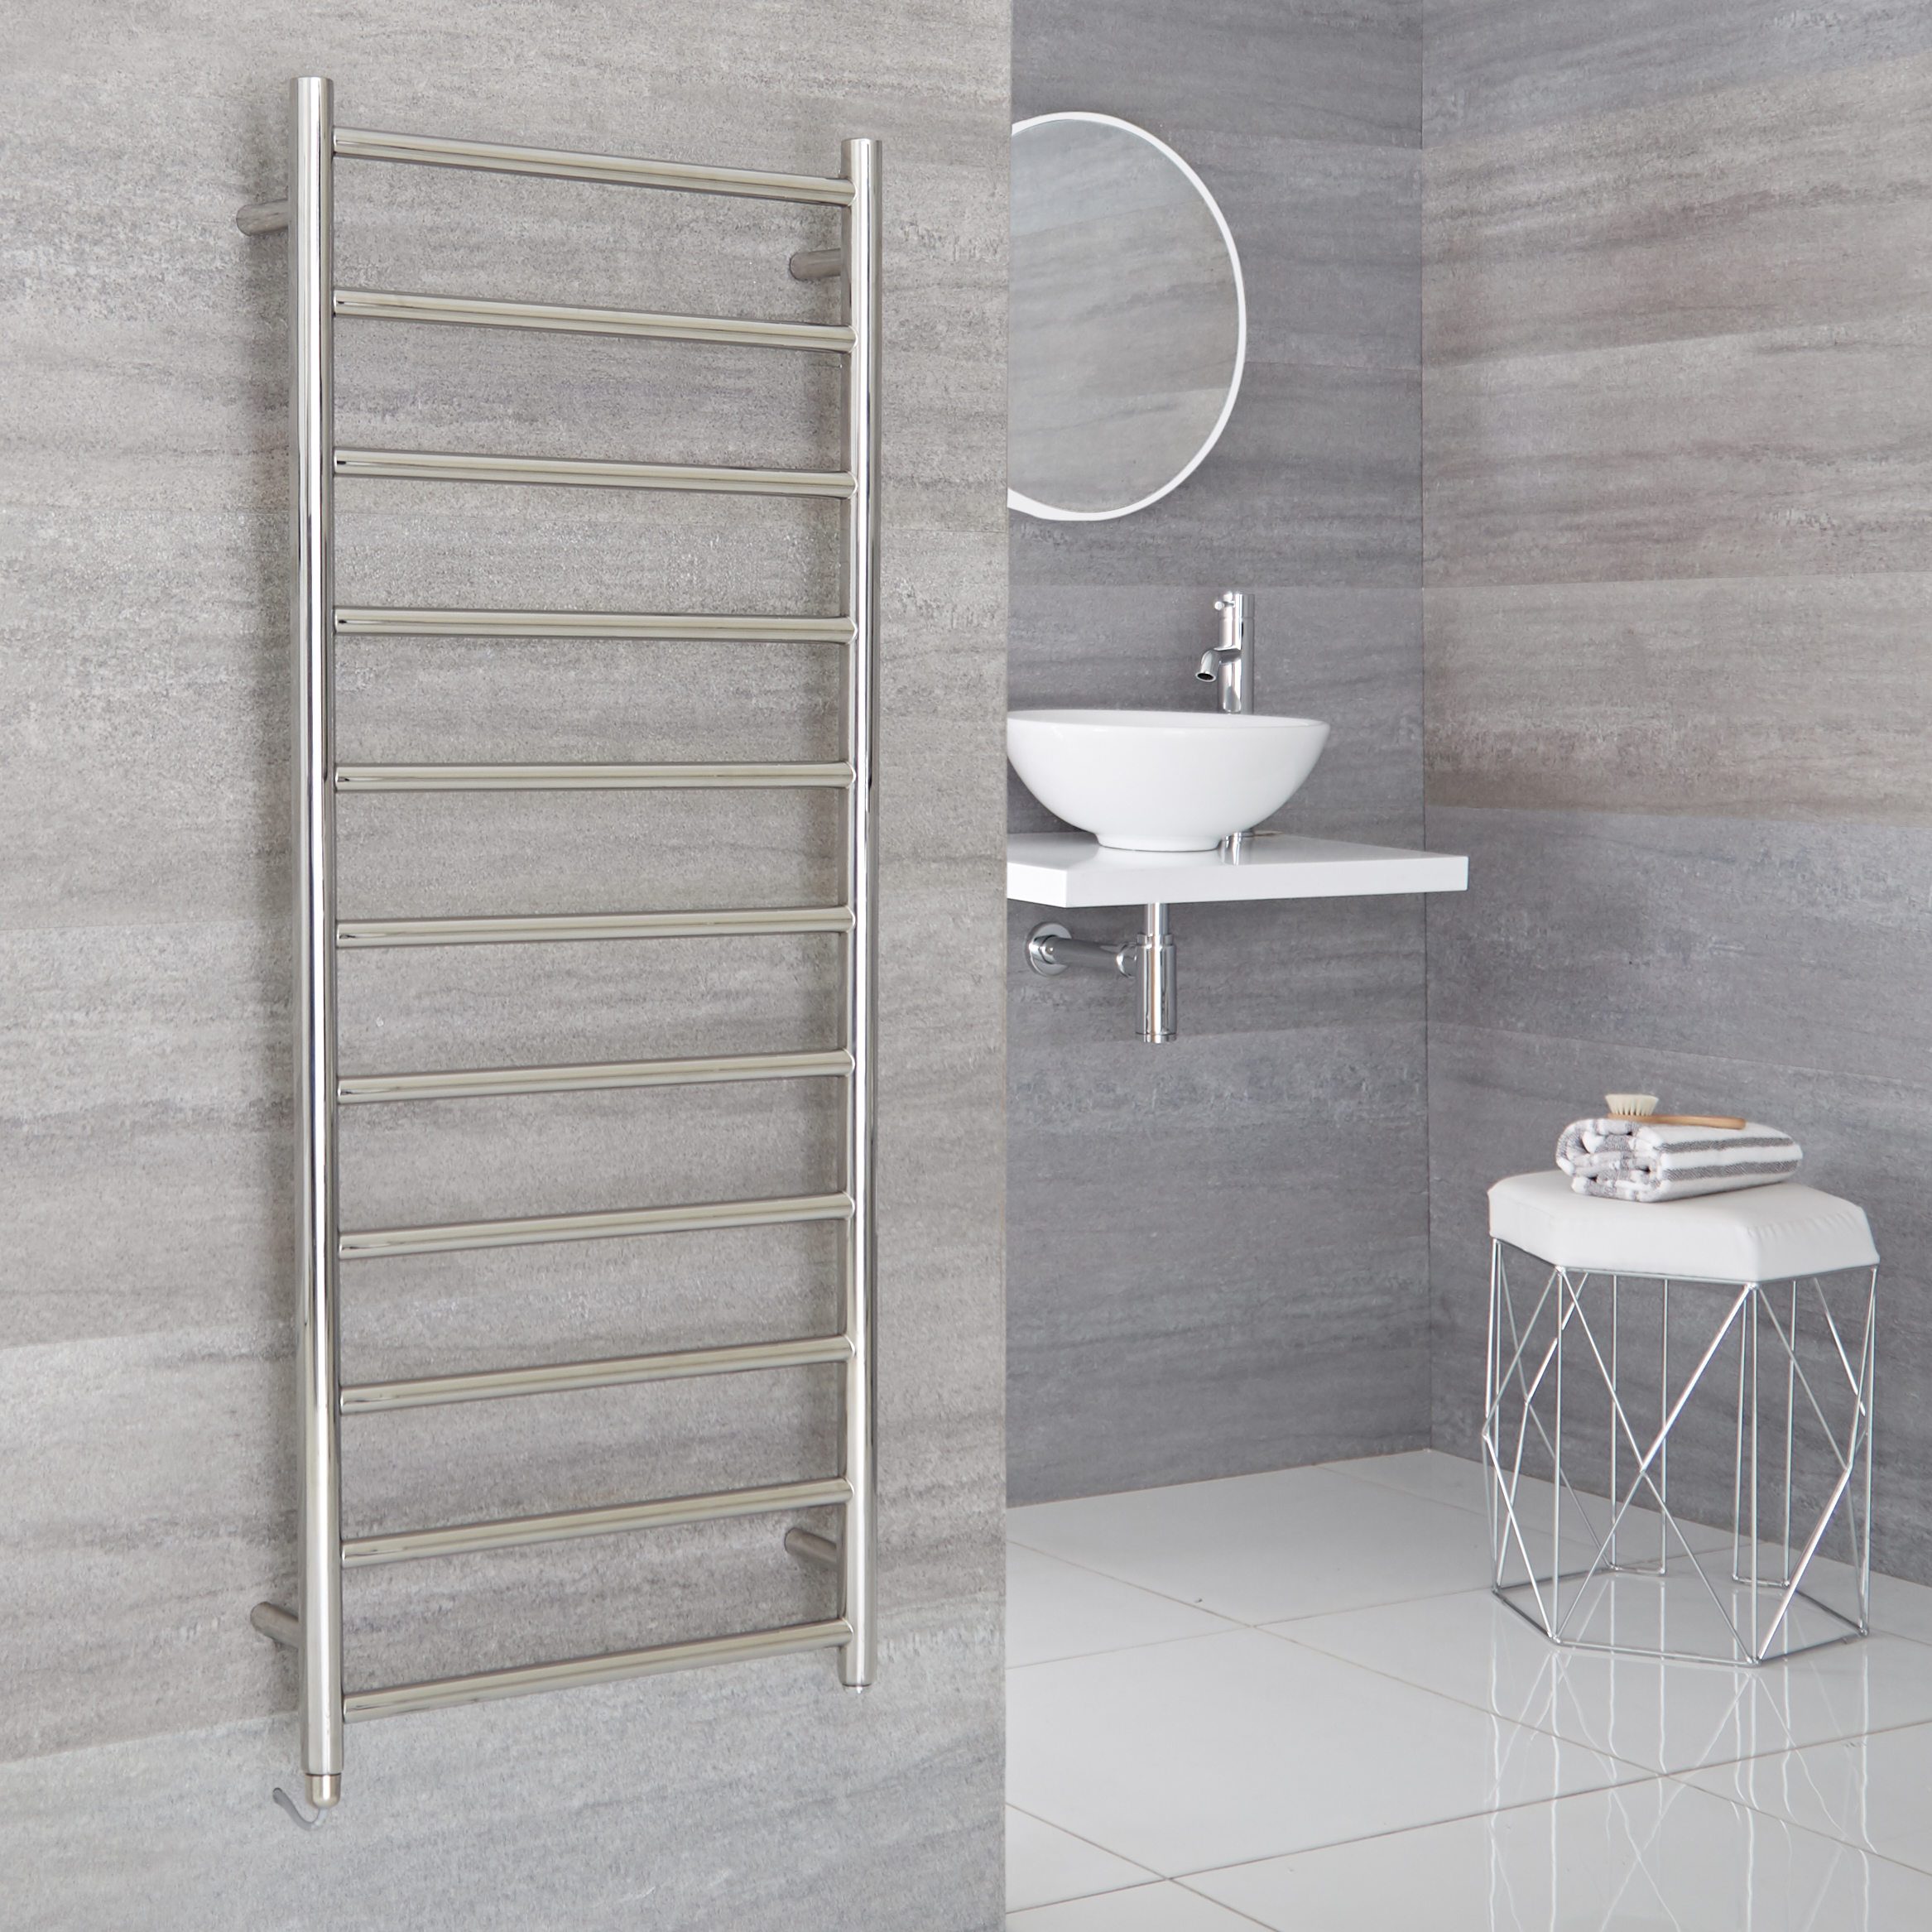 Milano Esk Electric - Stainless Steel Flat Heated Towel Rail - 500mm x 1200mm